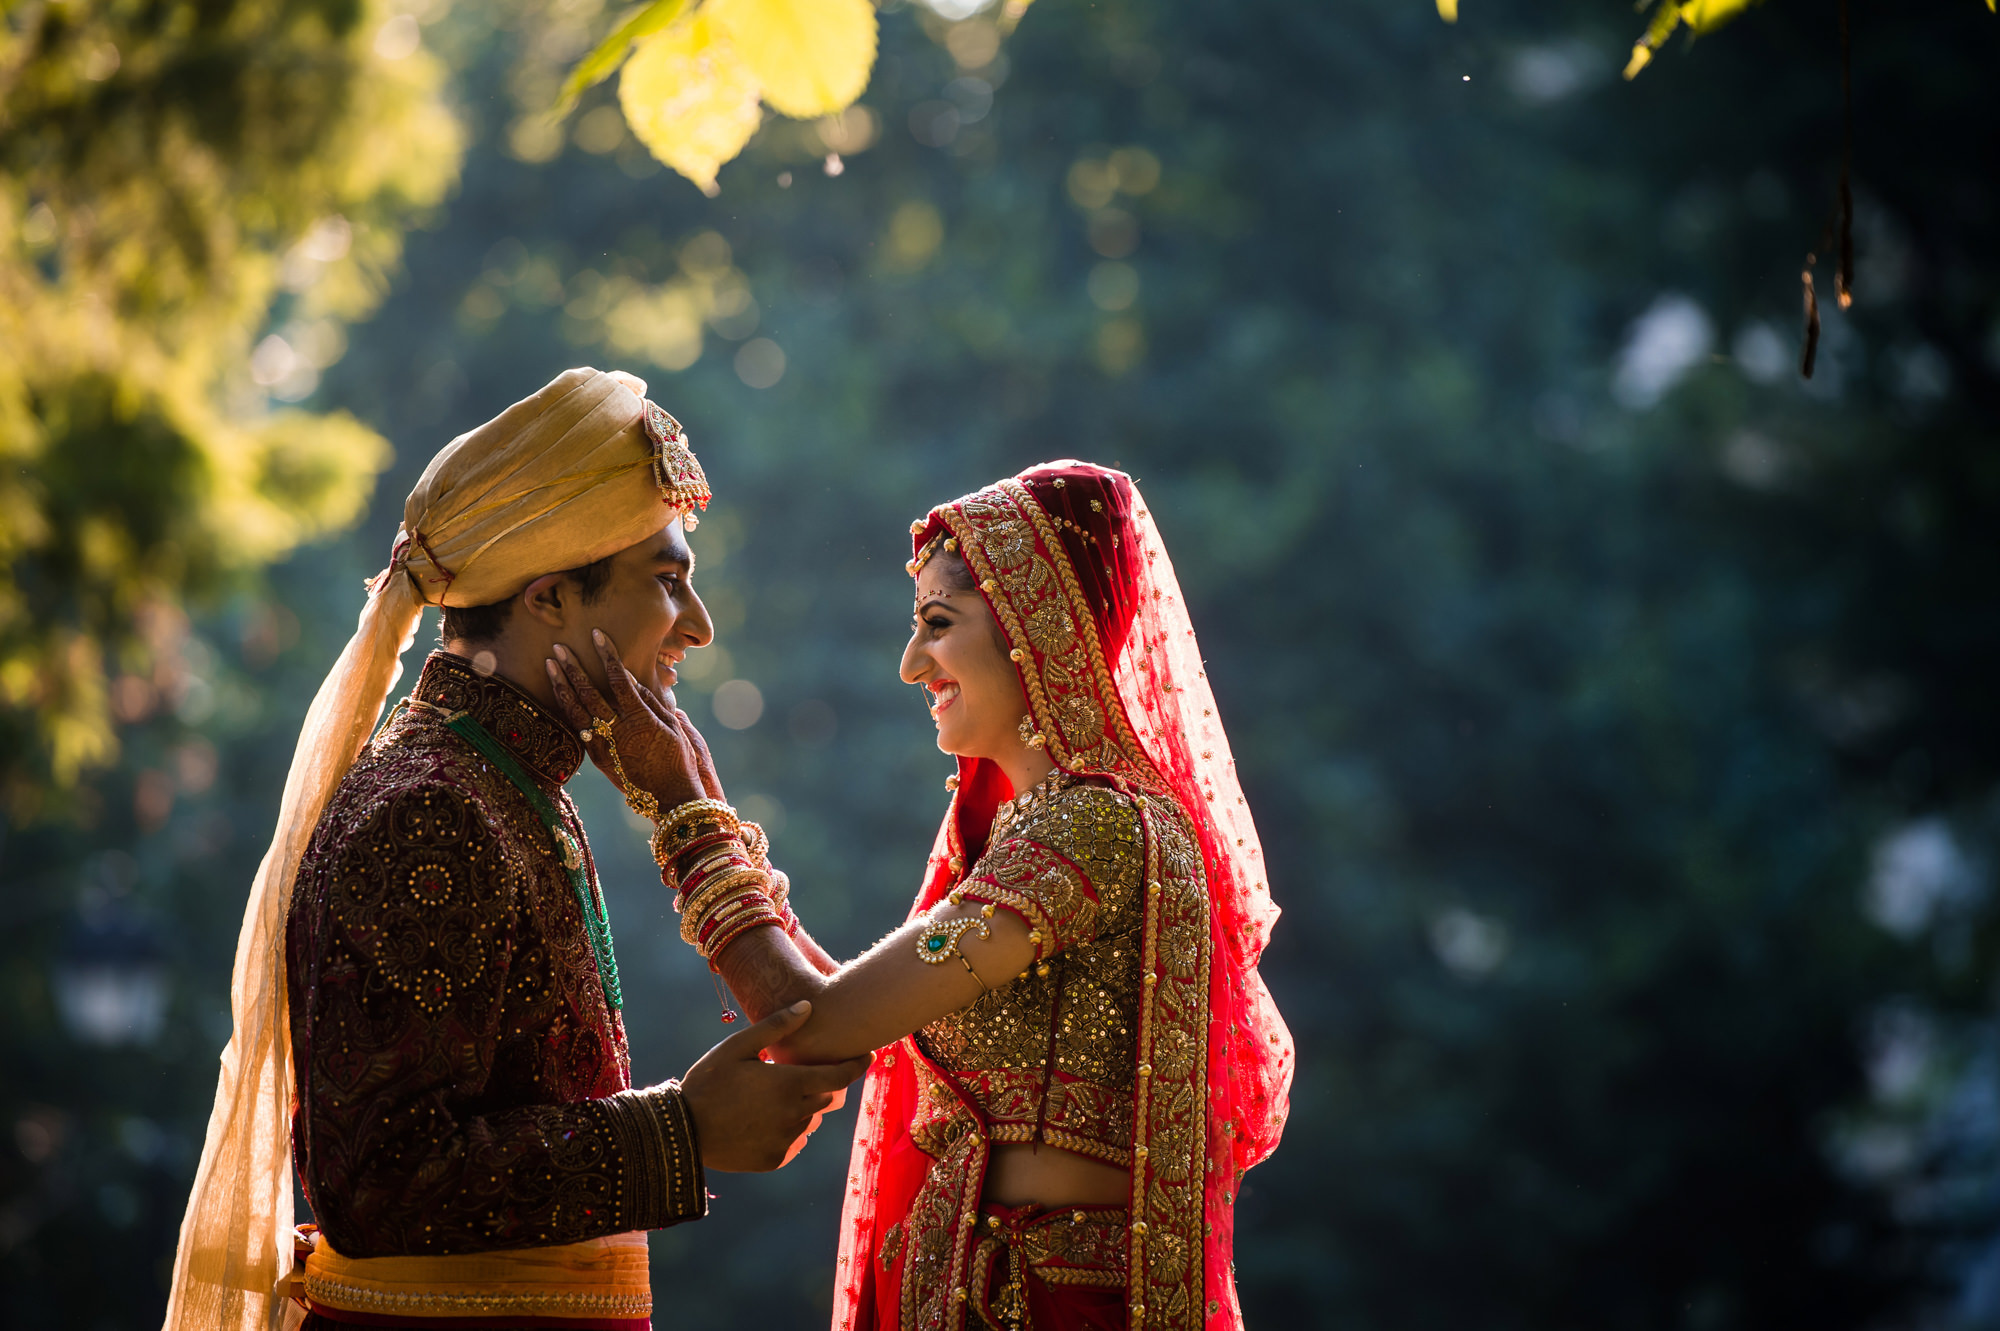 Indian bride and groom embracing photo by Cliff Mautner